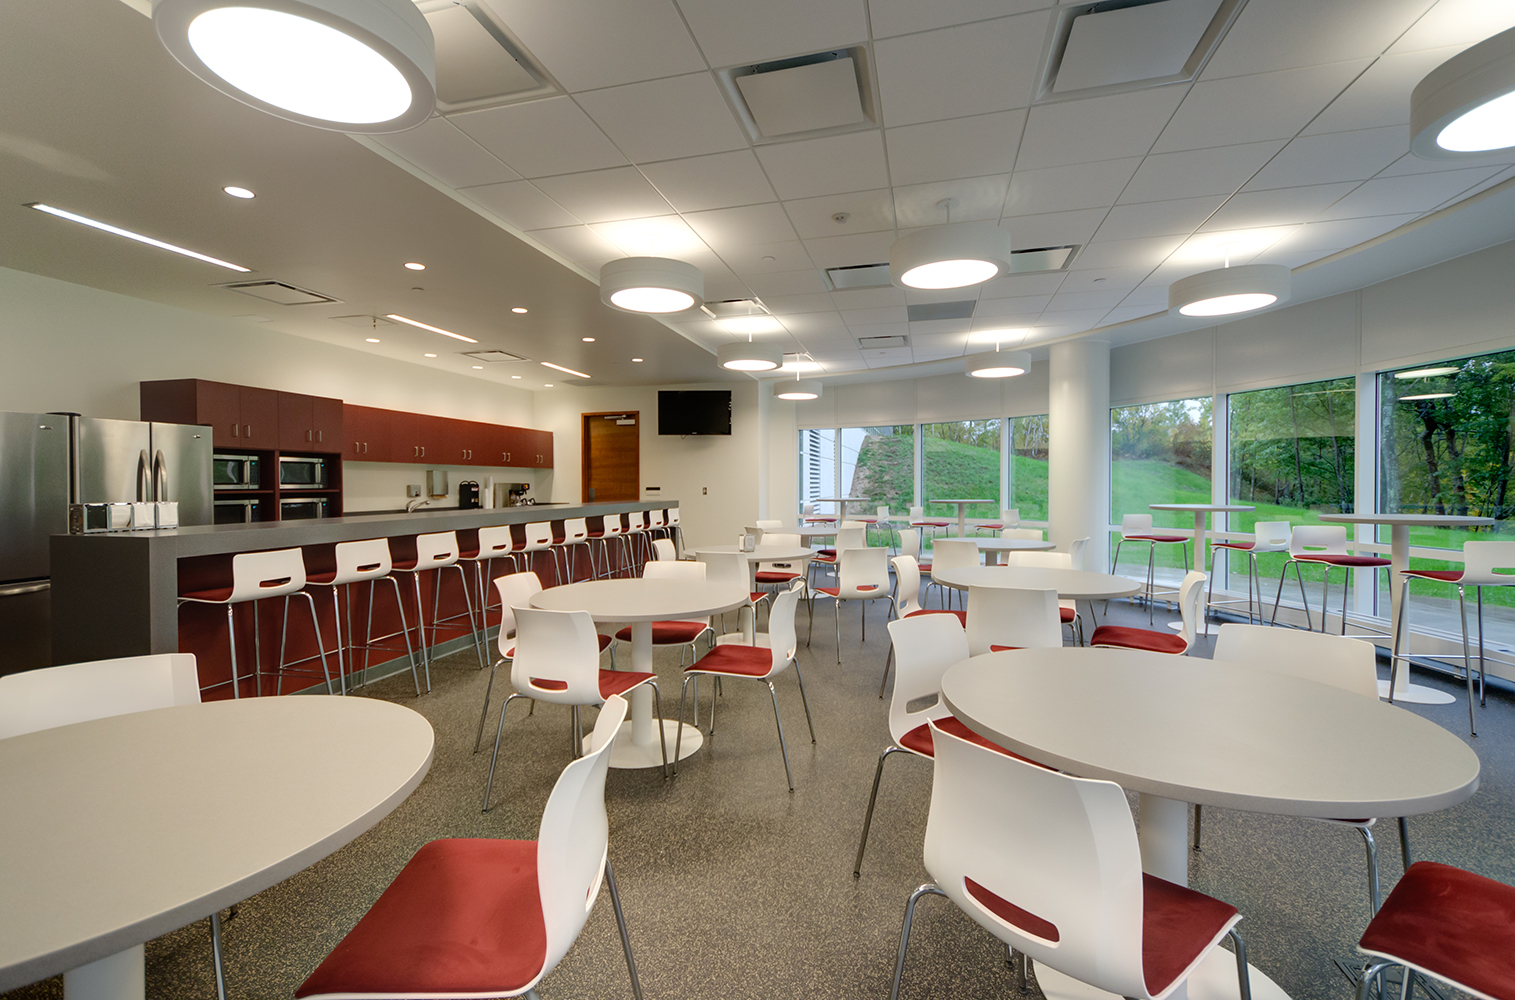 Omnience office lighting fixtures in a workplace cafeteria with round tables and large windows.